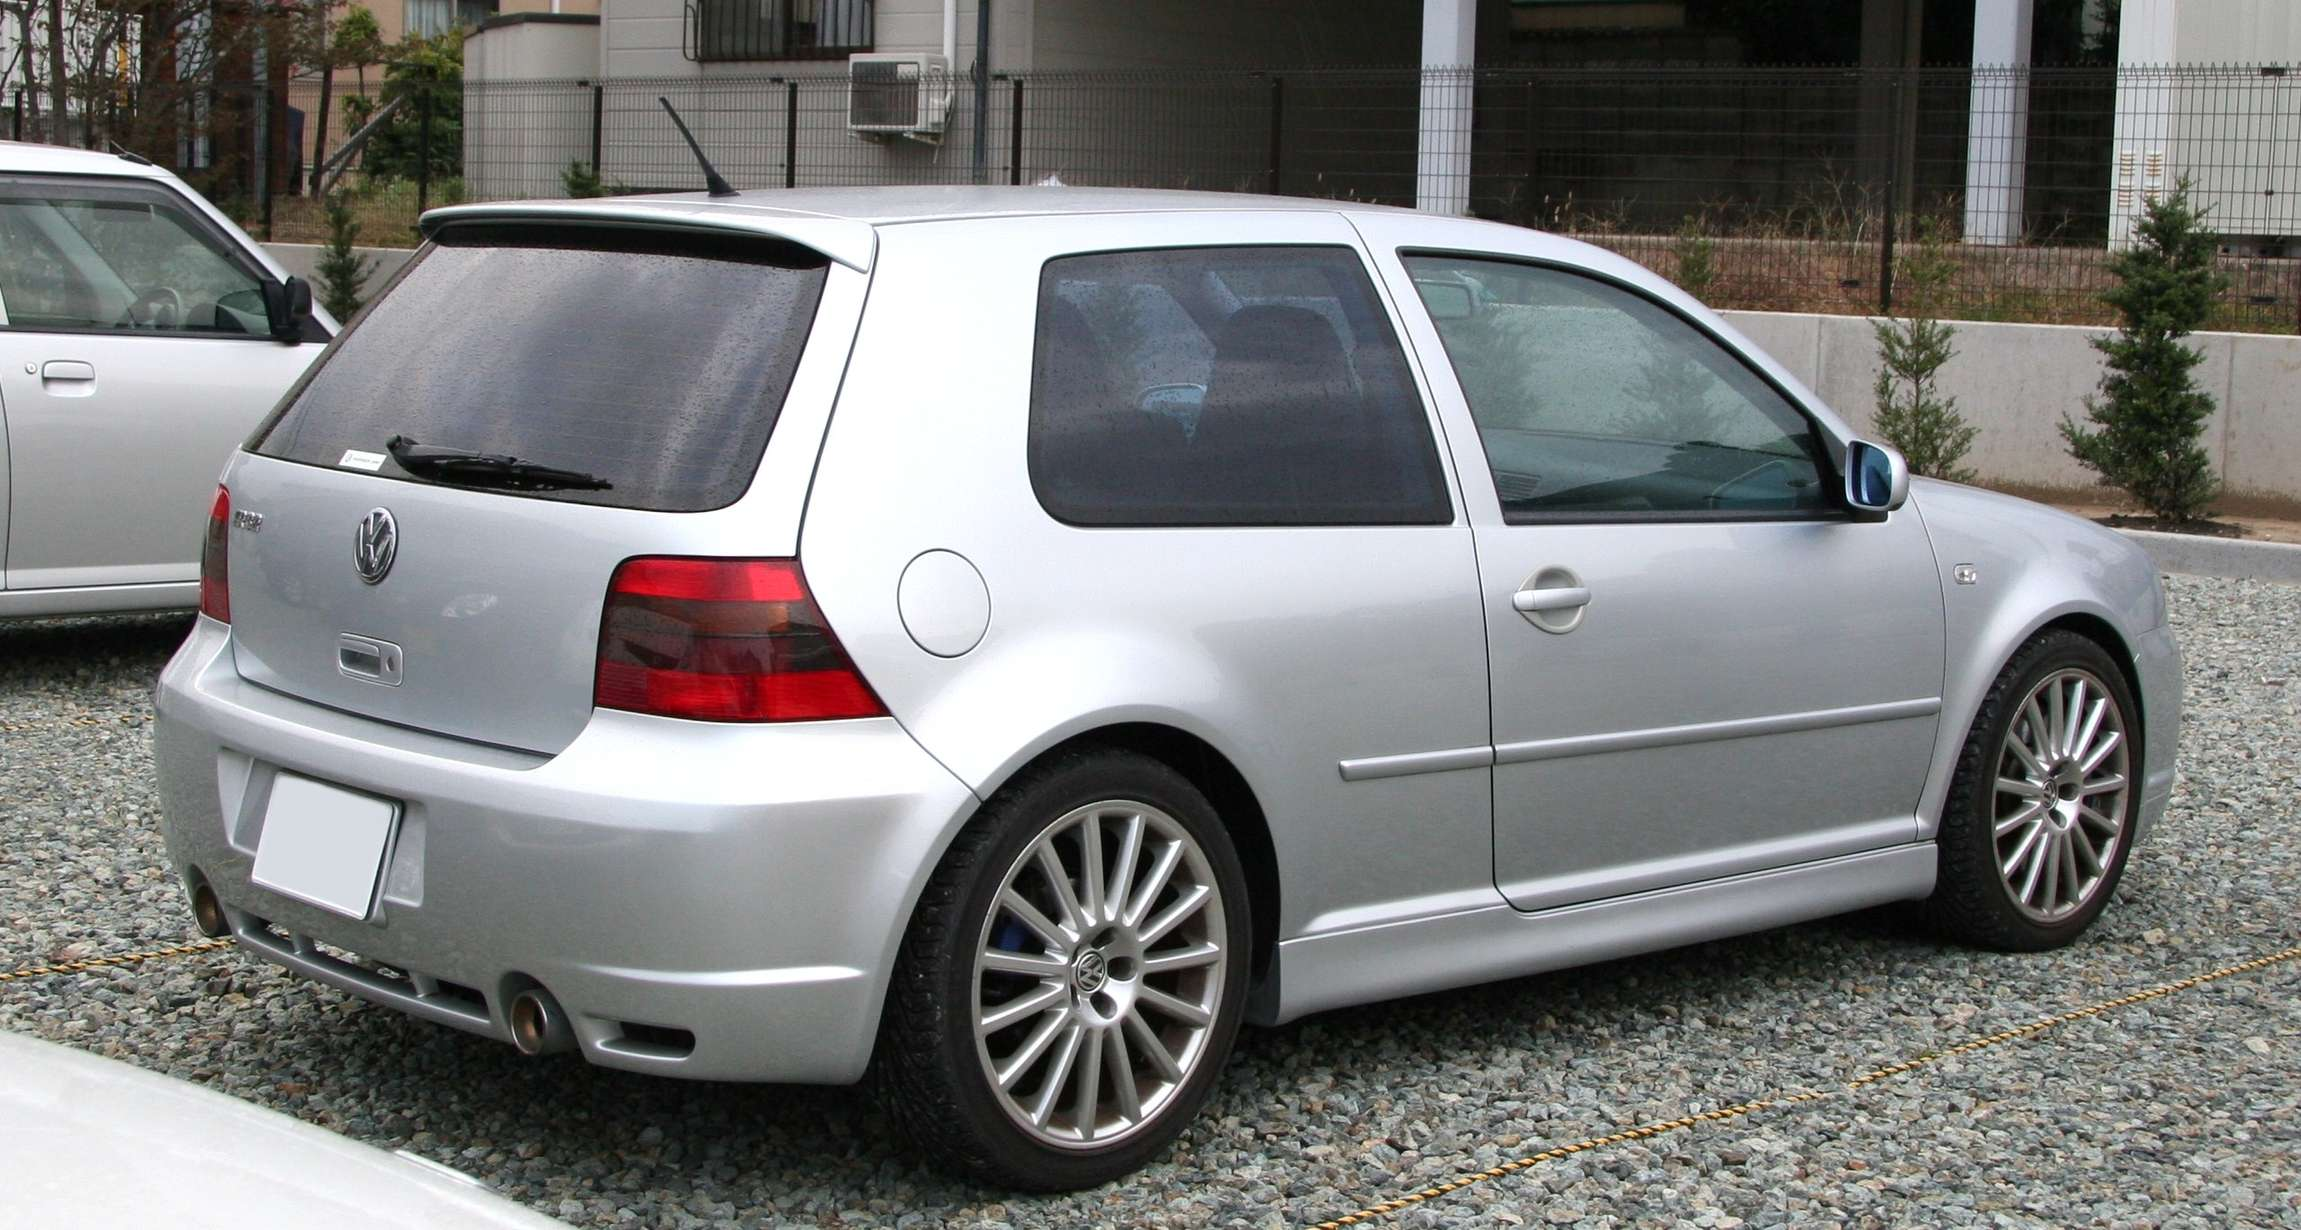 Volkswagen Golf 4 #9592685